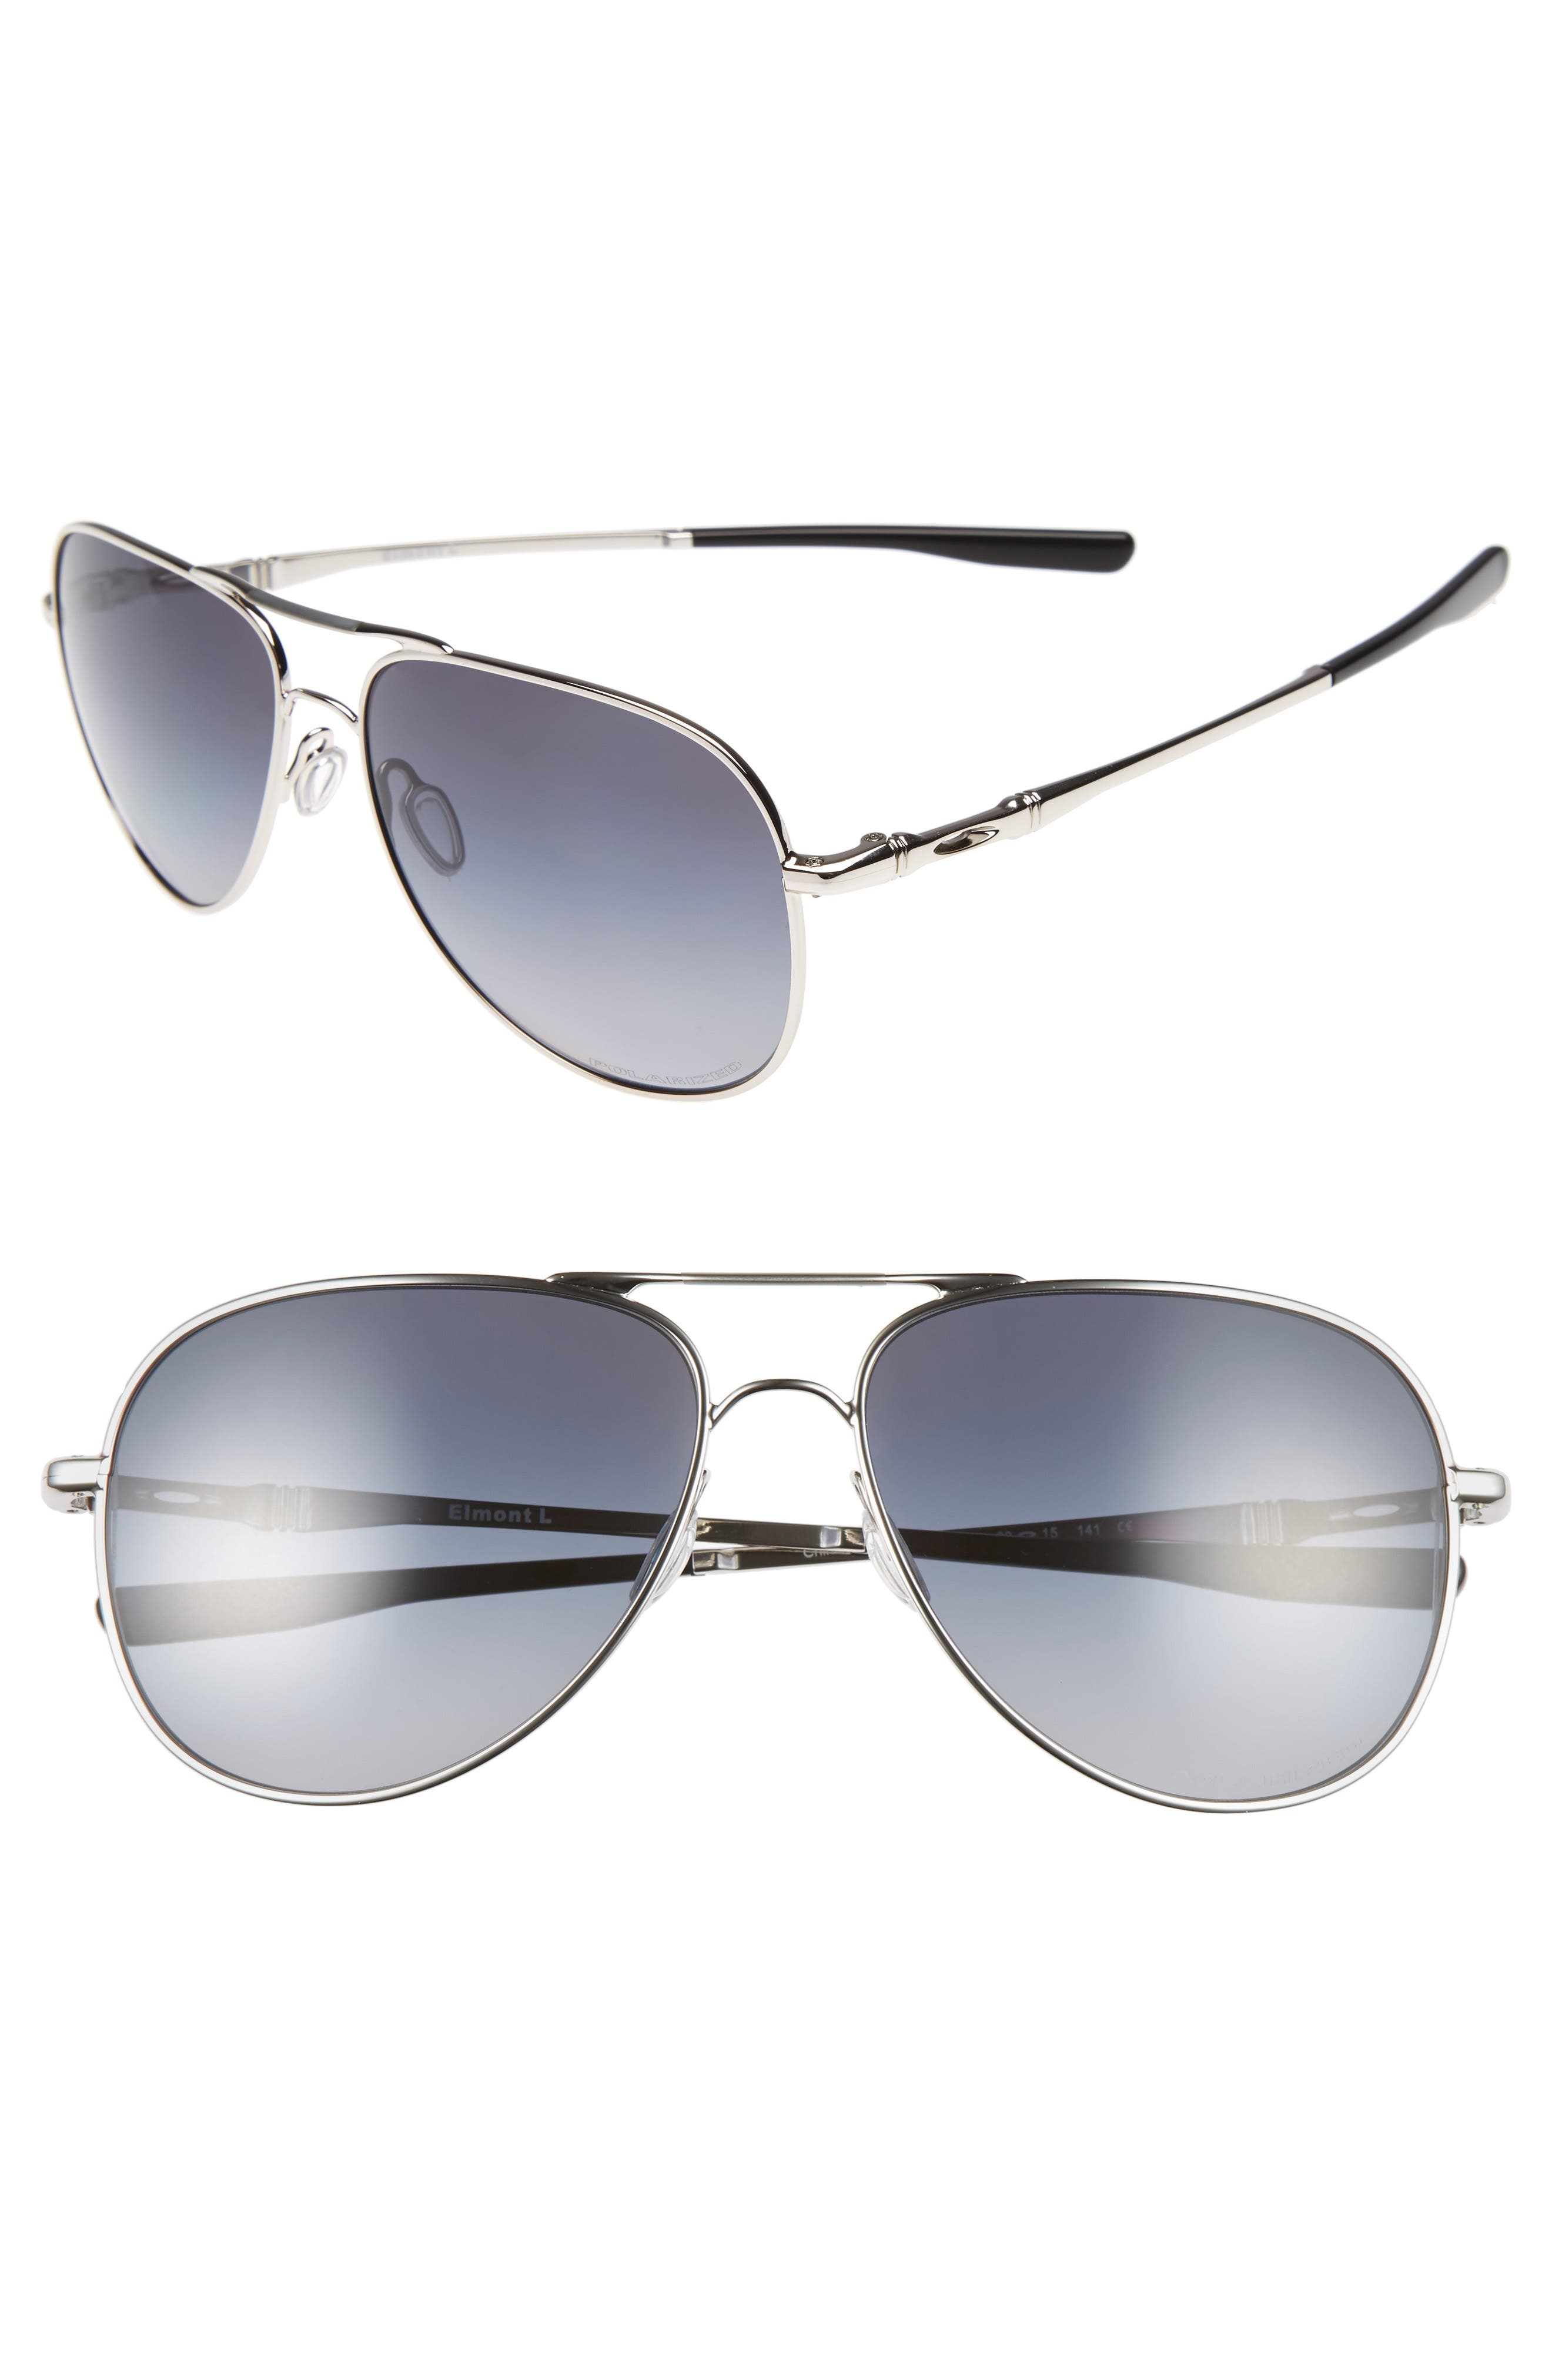 Elmont 61mm Polarized Aviator Sunglasses,                             Alternate thumbnail 2, color,                             SILVER